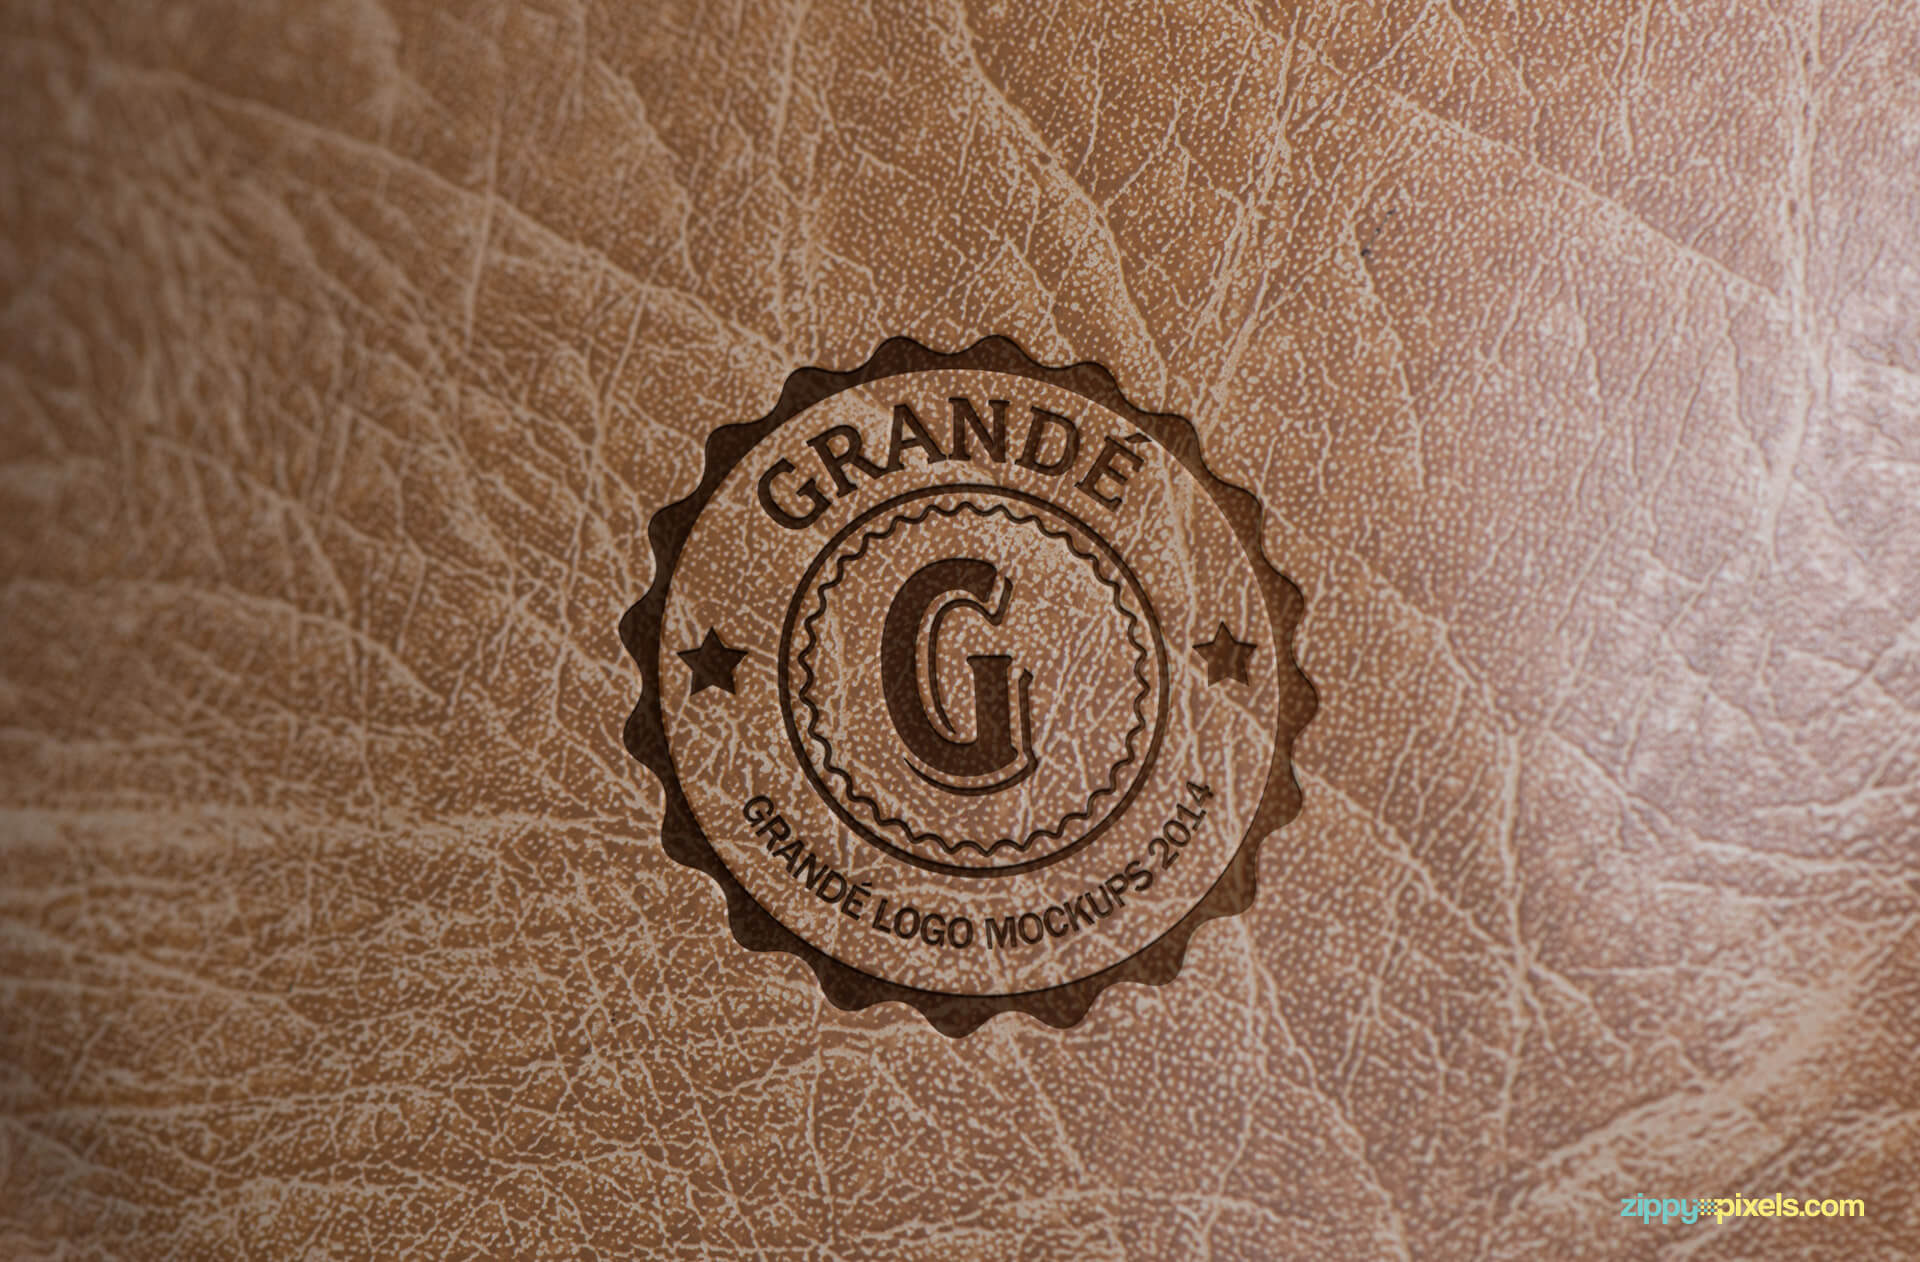 Logo Mockup - printed logo on soft leather